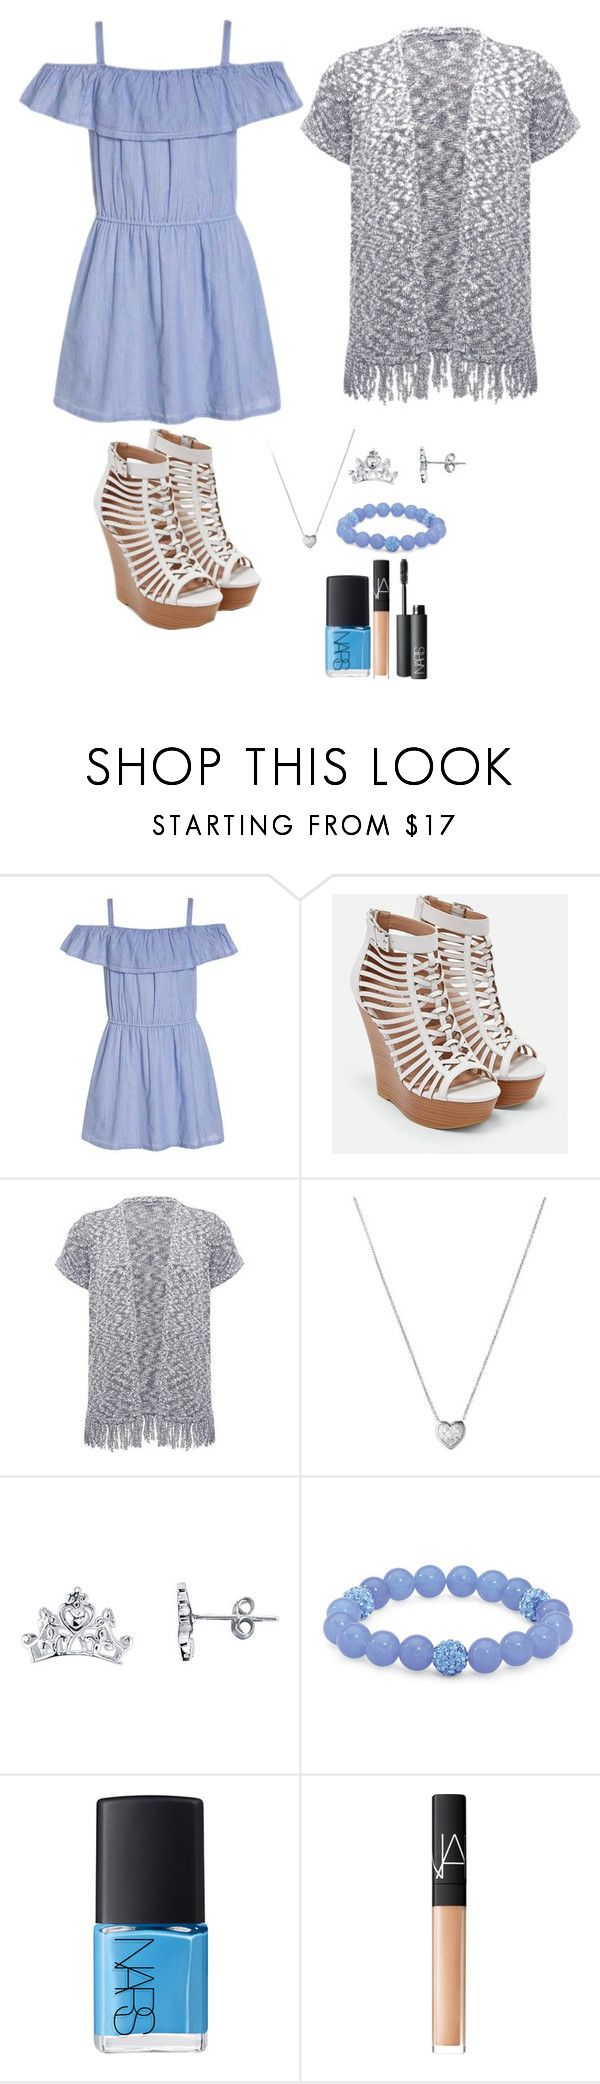 """""""Baby Blue and Ash Grey"""" by mias-angels on Polyvore featuring Abercrombie & Fitch, JustFab, M&Co, Links of London, Disney, Palm Beach Jewelry and NARS Cosmetics"""